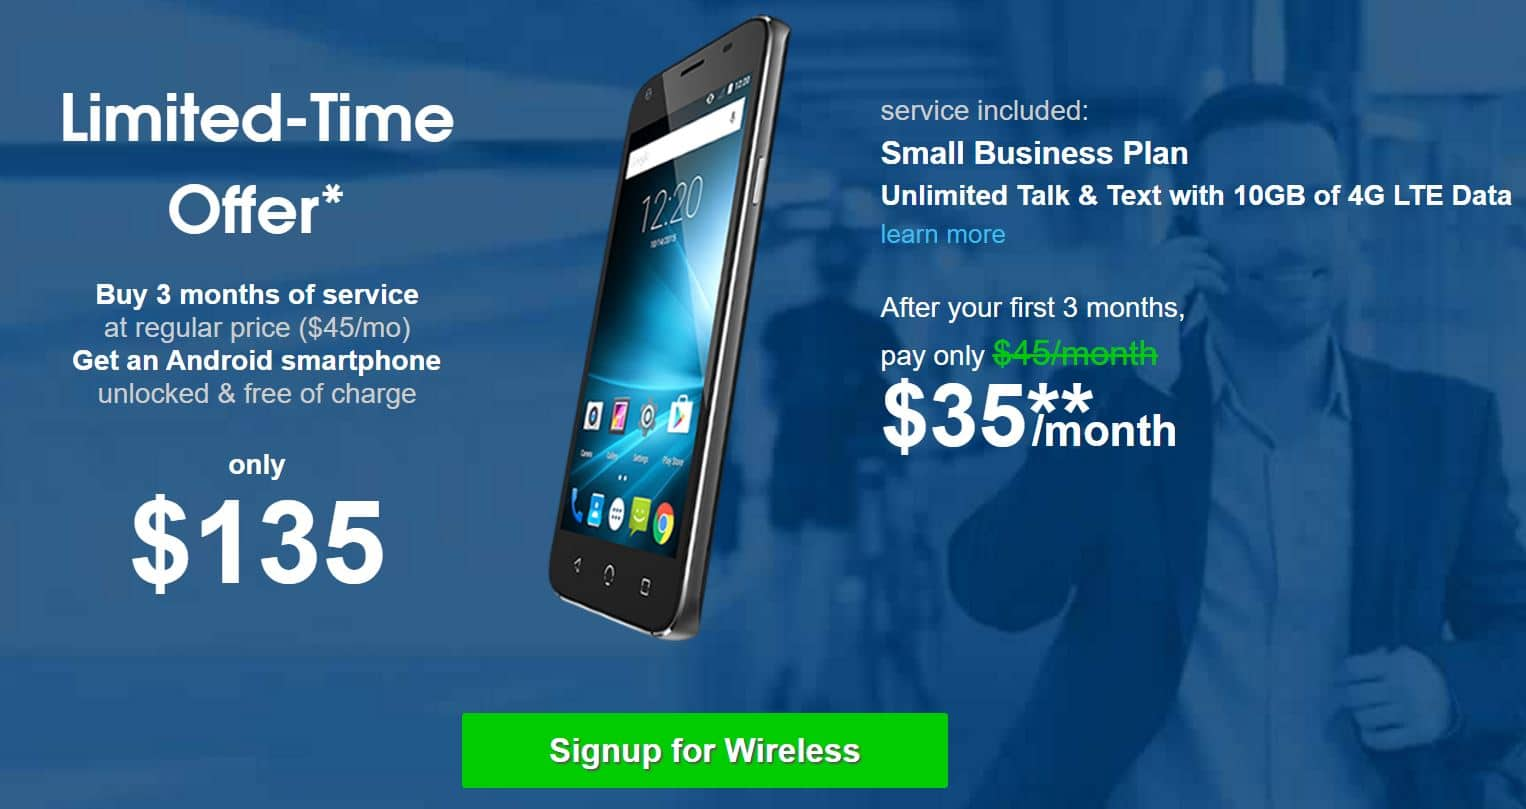 NetTalk CONNECT (T-MOBILE) Wireless- 55% off Promo Deal 3-month Service + Nuu X4 Smartphone Unlocked for $135